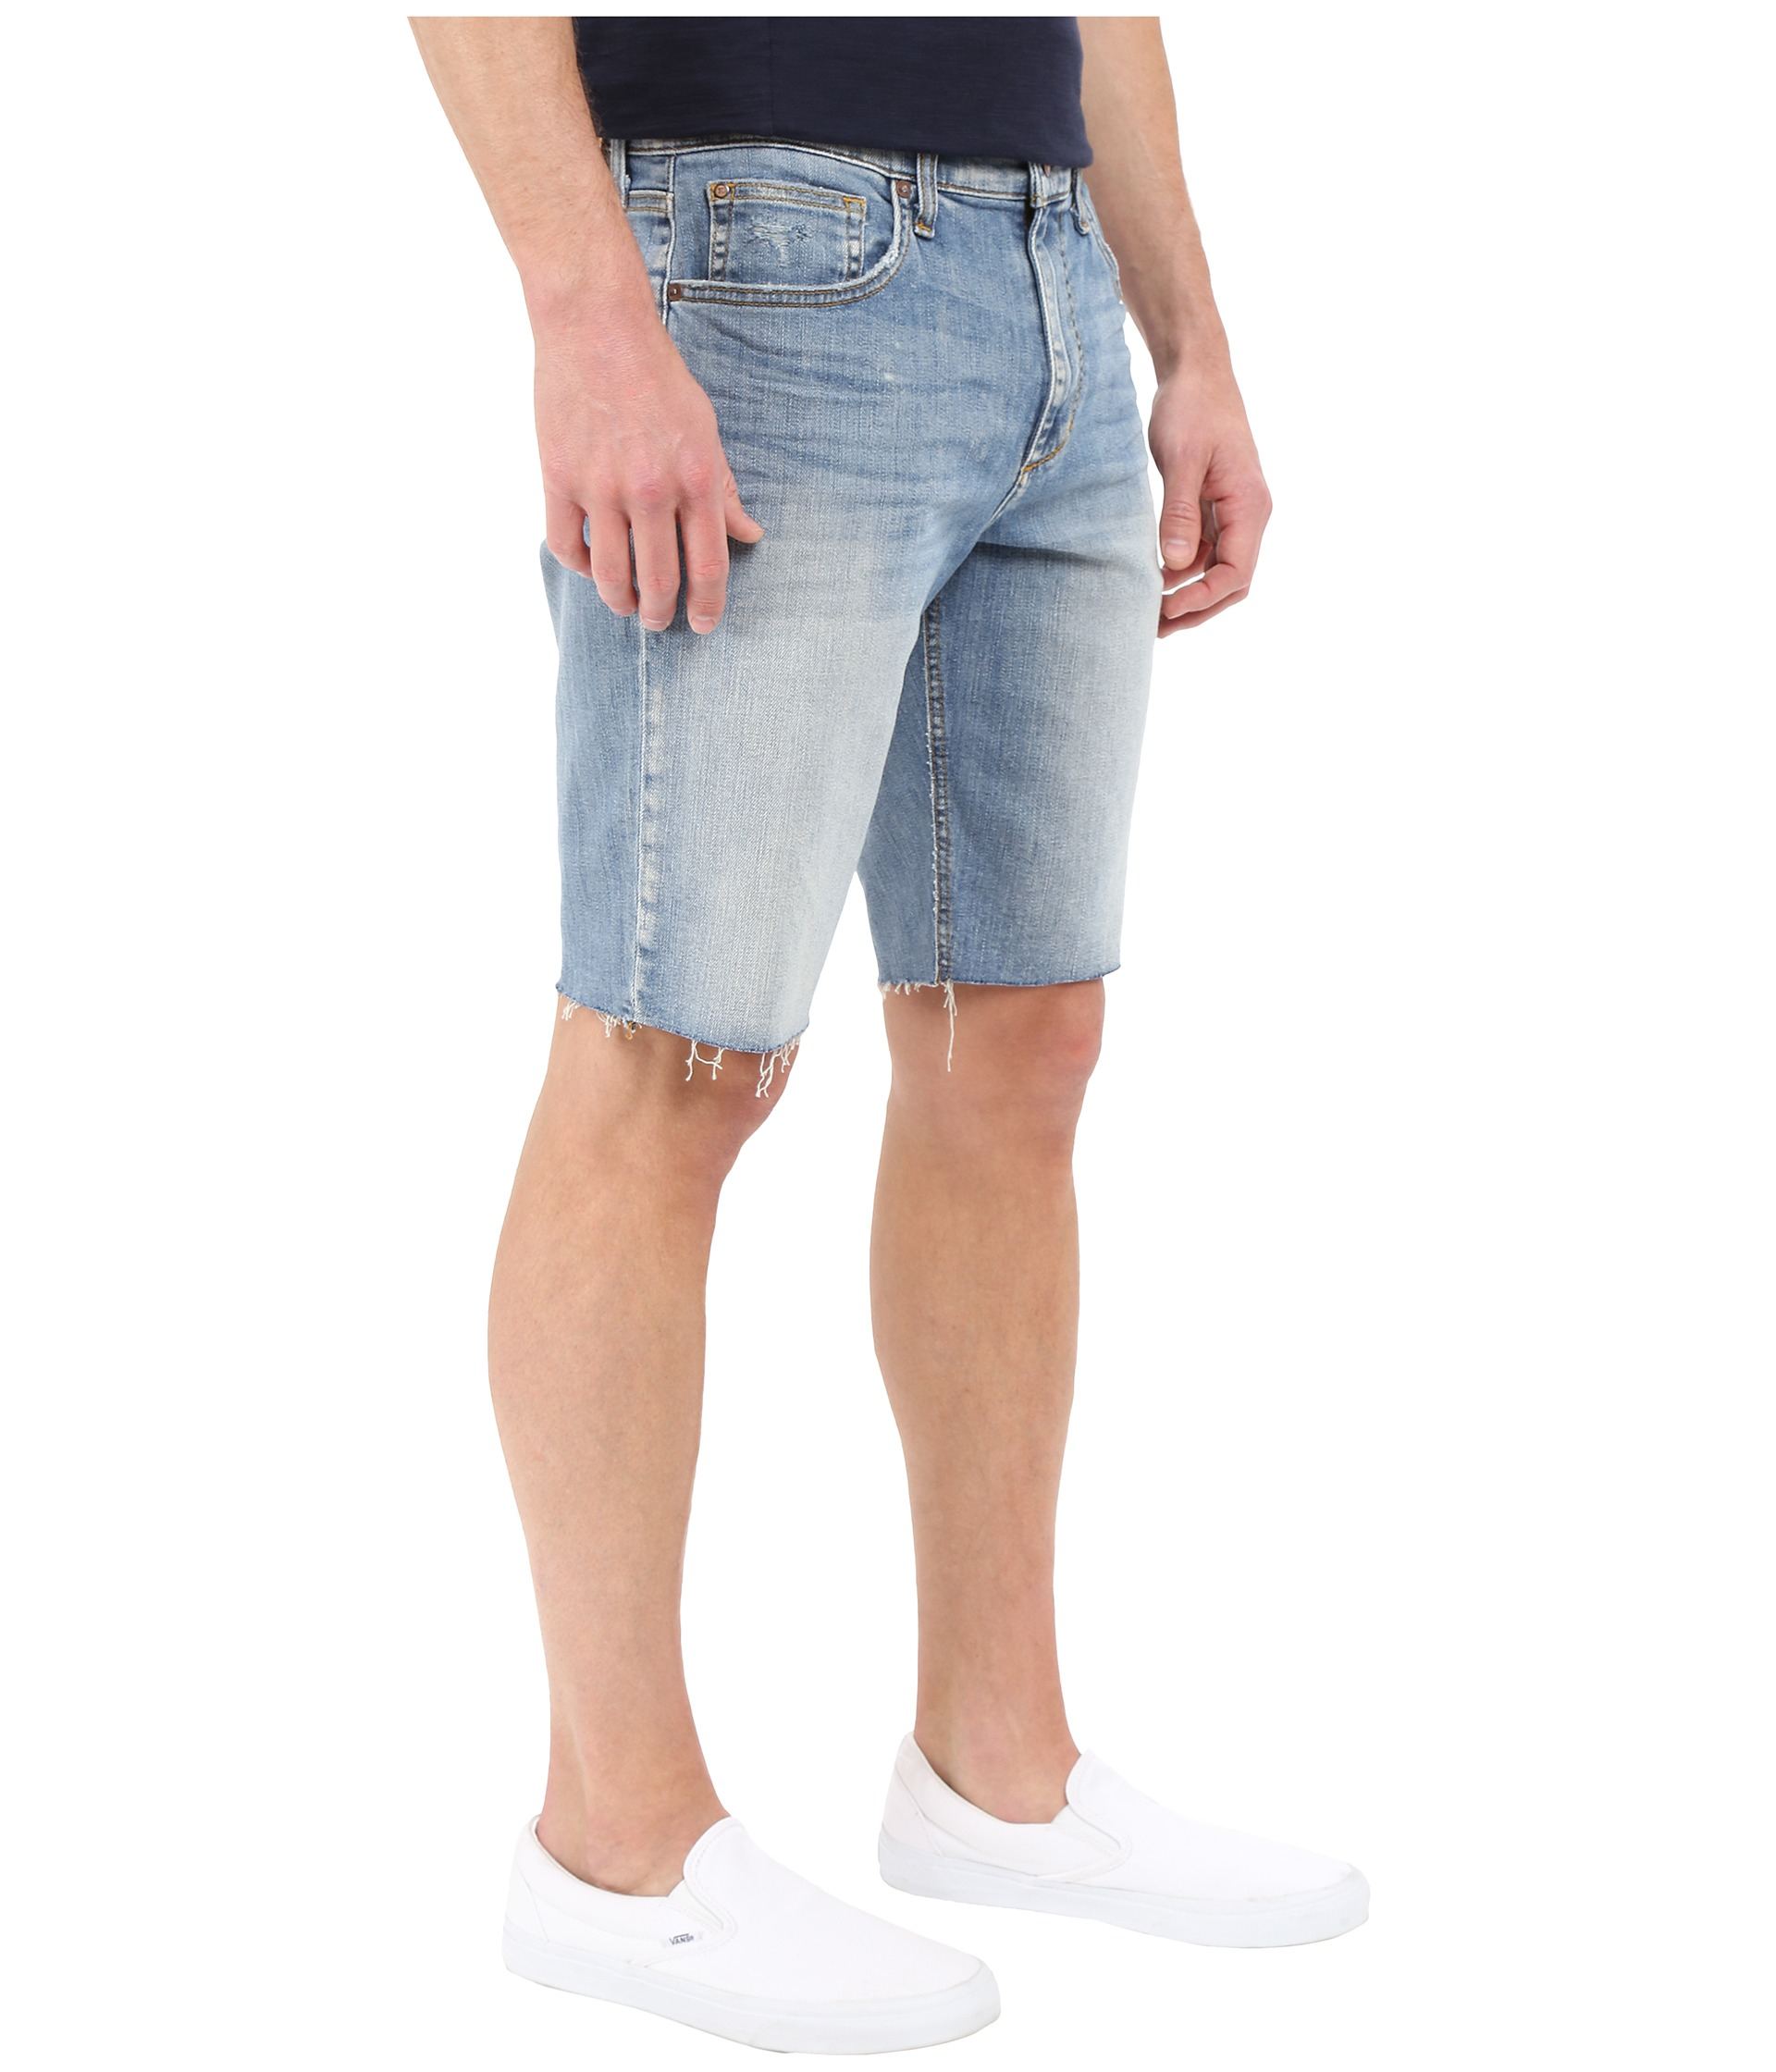 Cut Off Denim Shorts 66